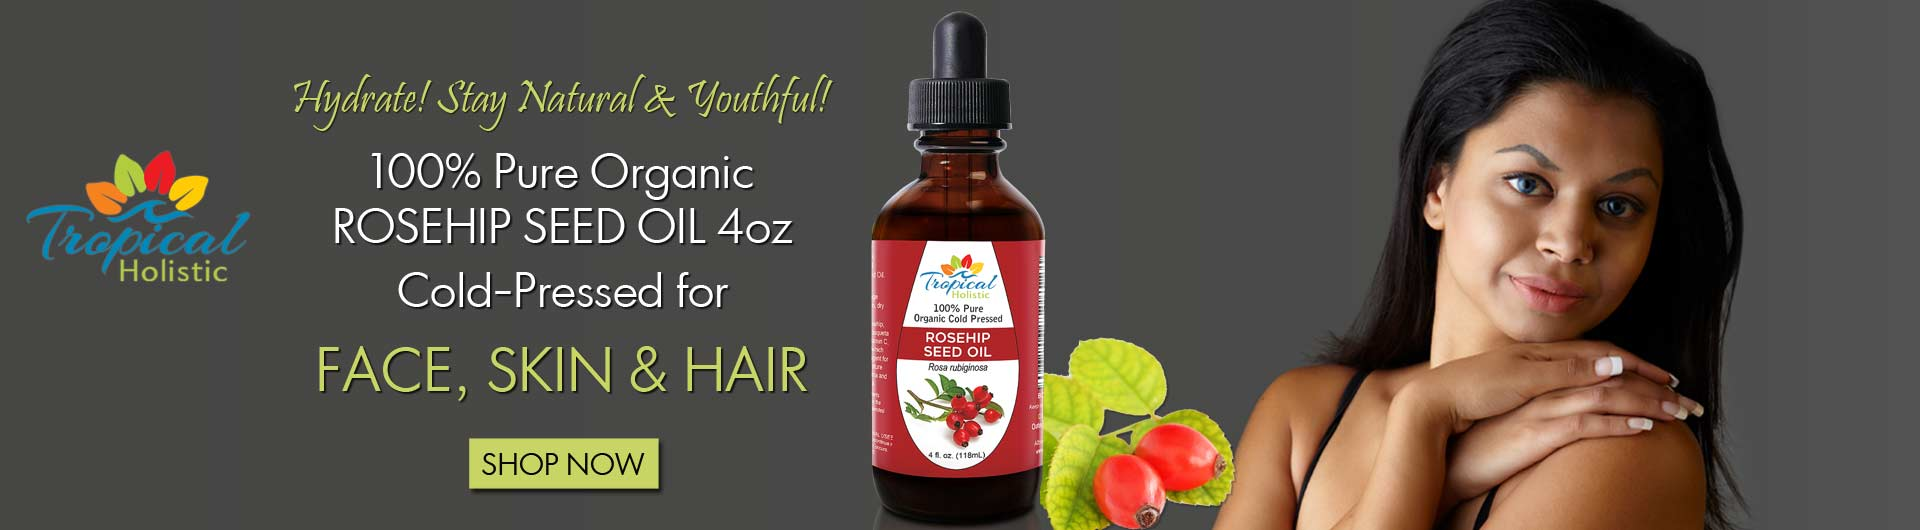 Rosehip Seed Oil from Tropical Holistic